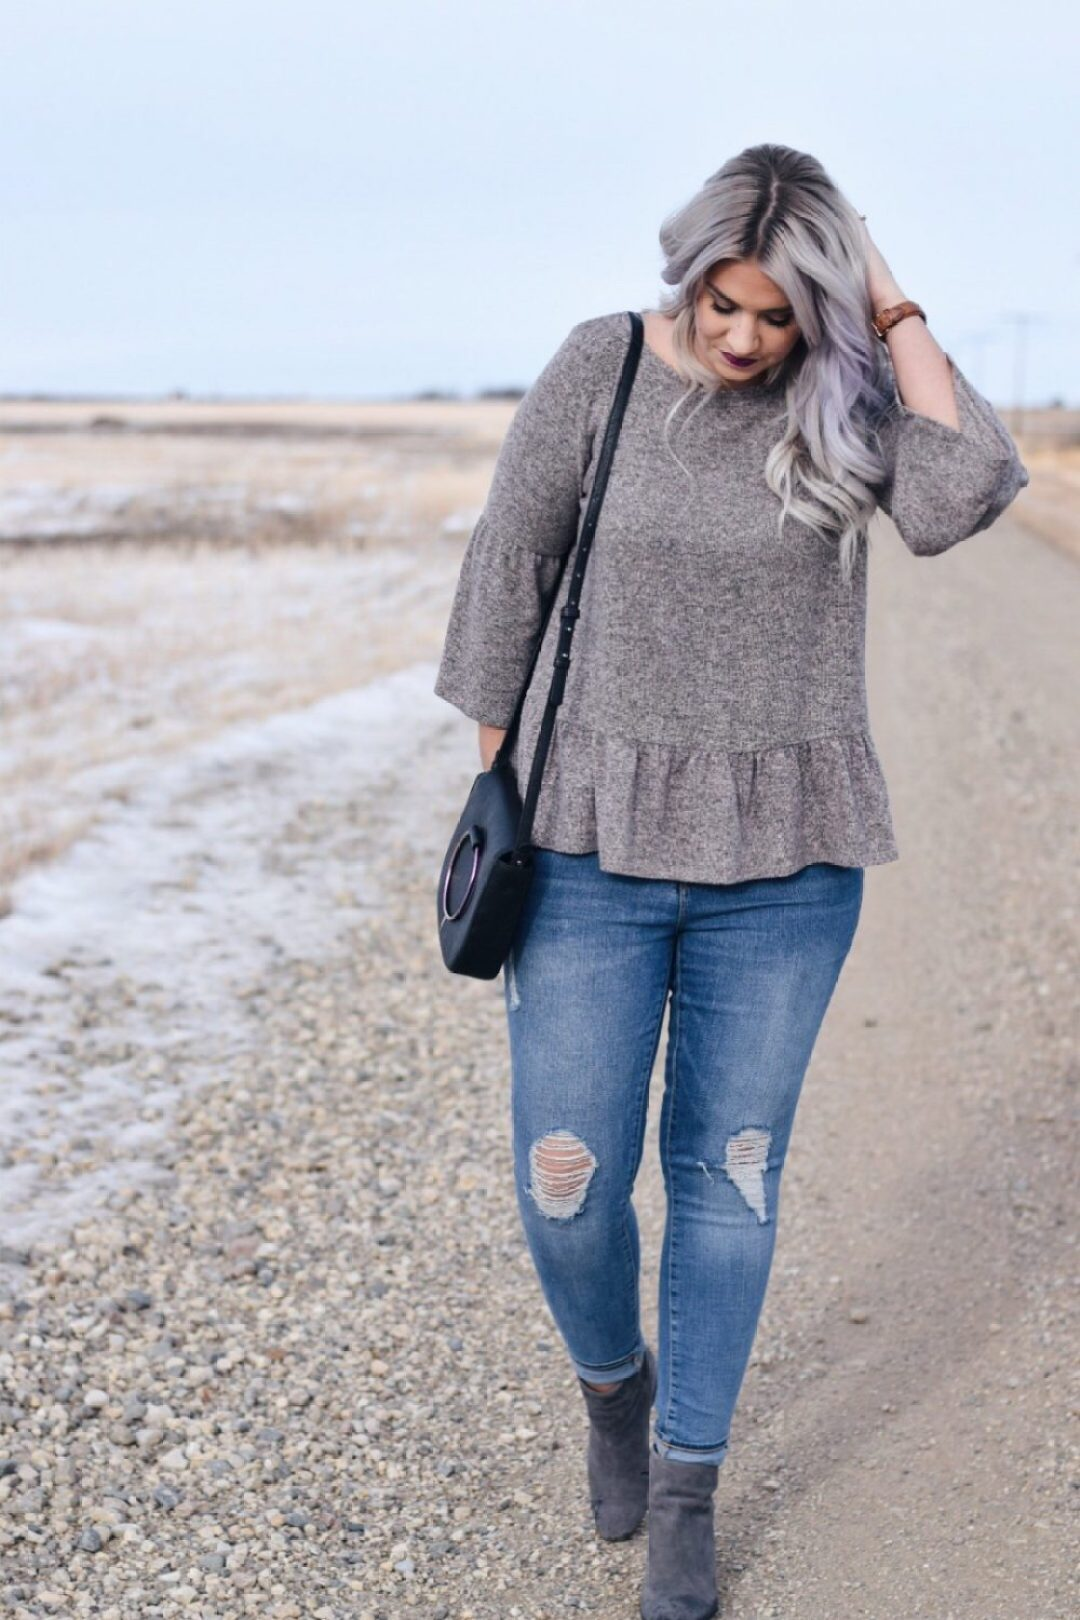 Casual style: Peplum sweater and distressed skinny jeans